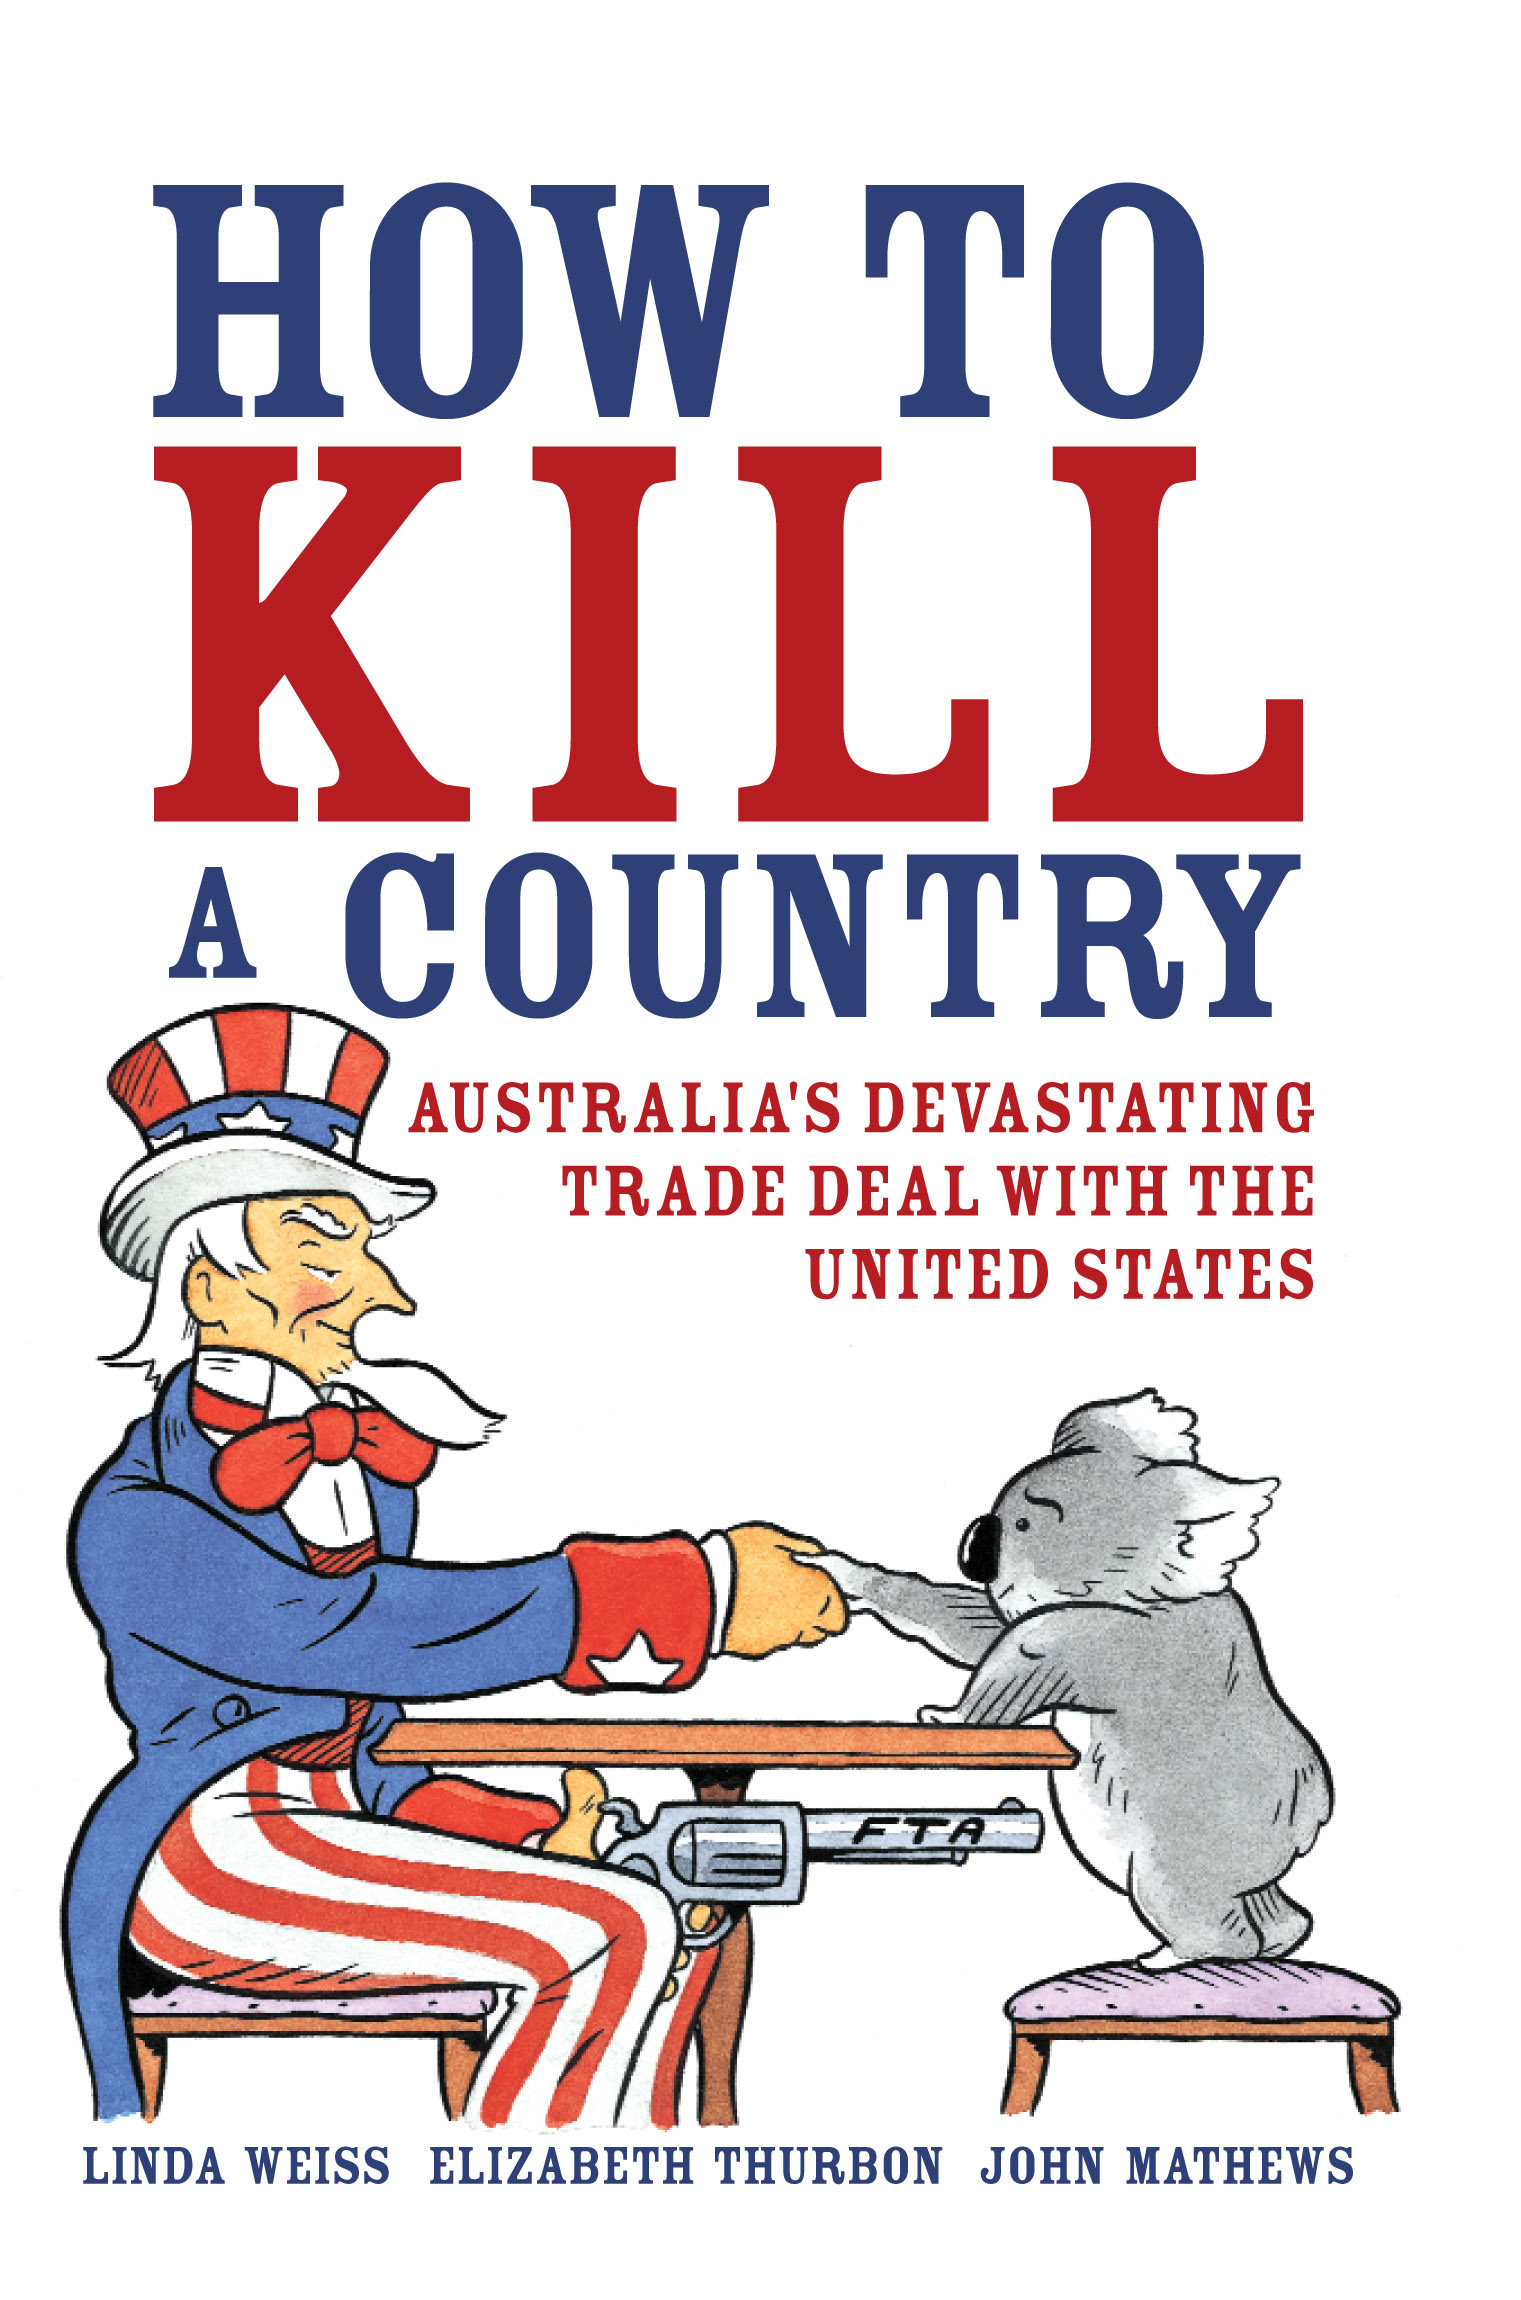 How To Kill A Country Linda Weiss Elizabeth Thurbon John Mathews